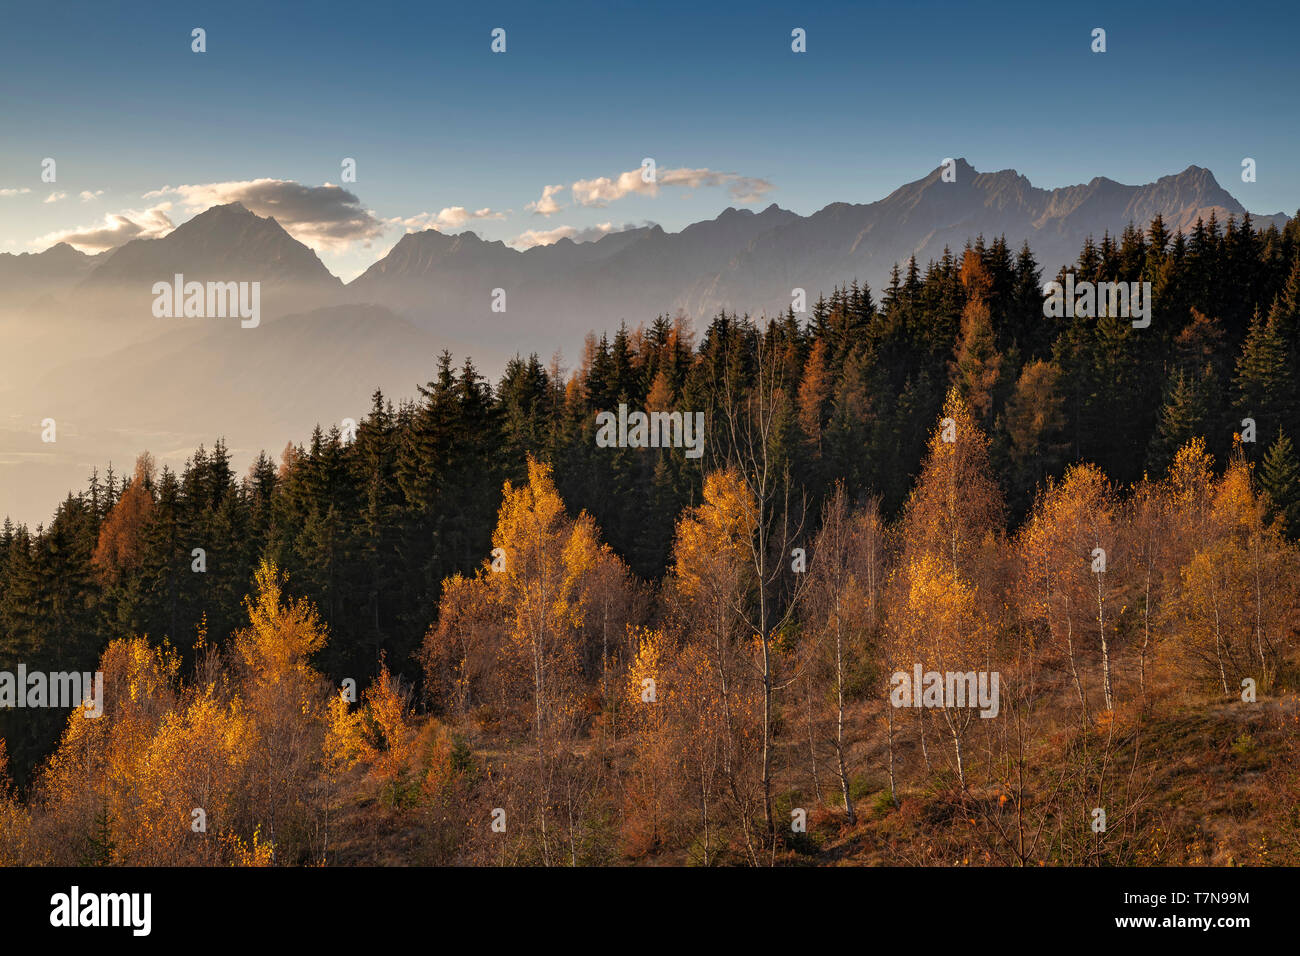 Autumnal mountain landscape with birches, larches and spruces at sunset, in background the Karwendel mountains - Stock Image